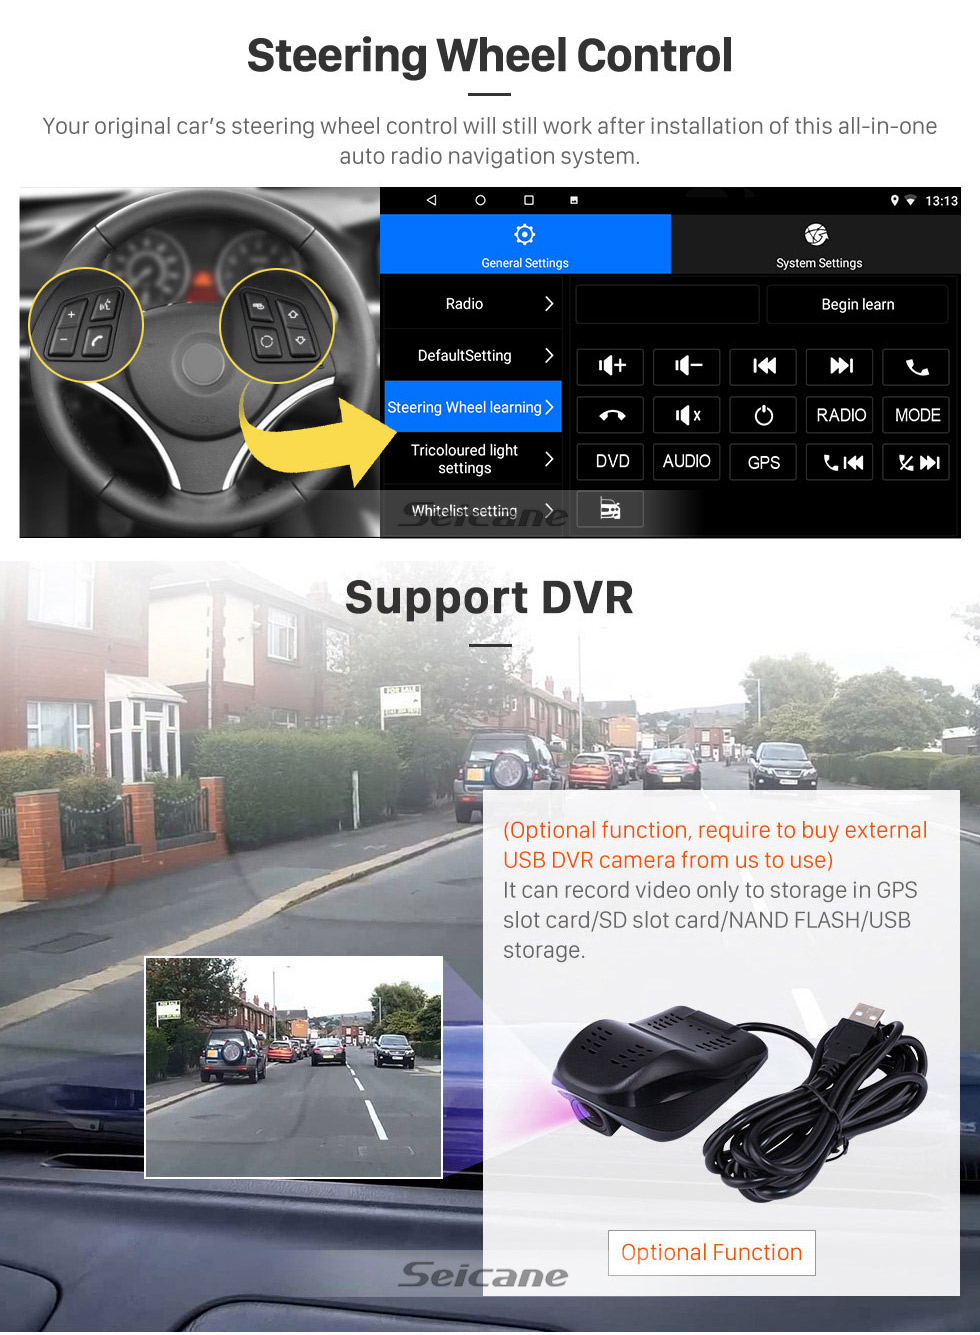 Seicane For 2017 Renault Clio Radio 9 inch Android 10.0 HD Touchscreen GPS Navigation System with Bluetooth support Carplay OBD2